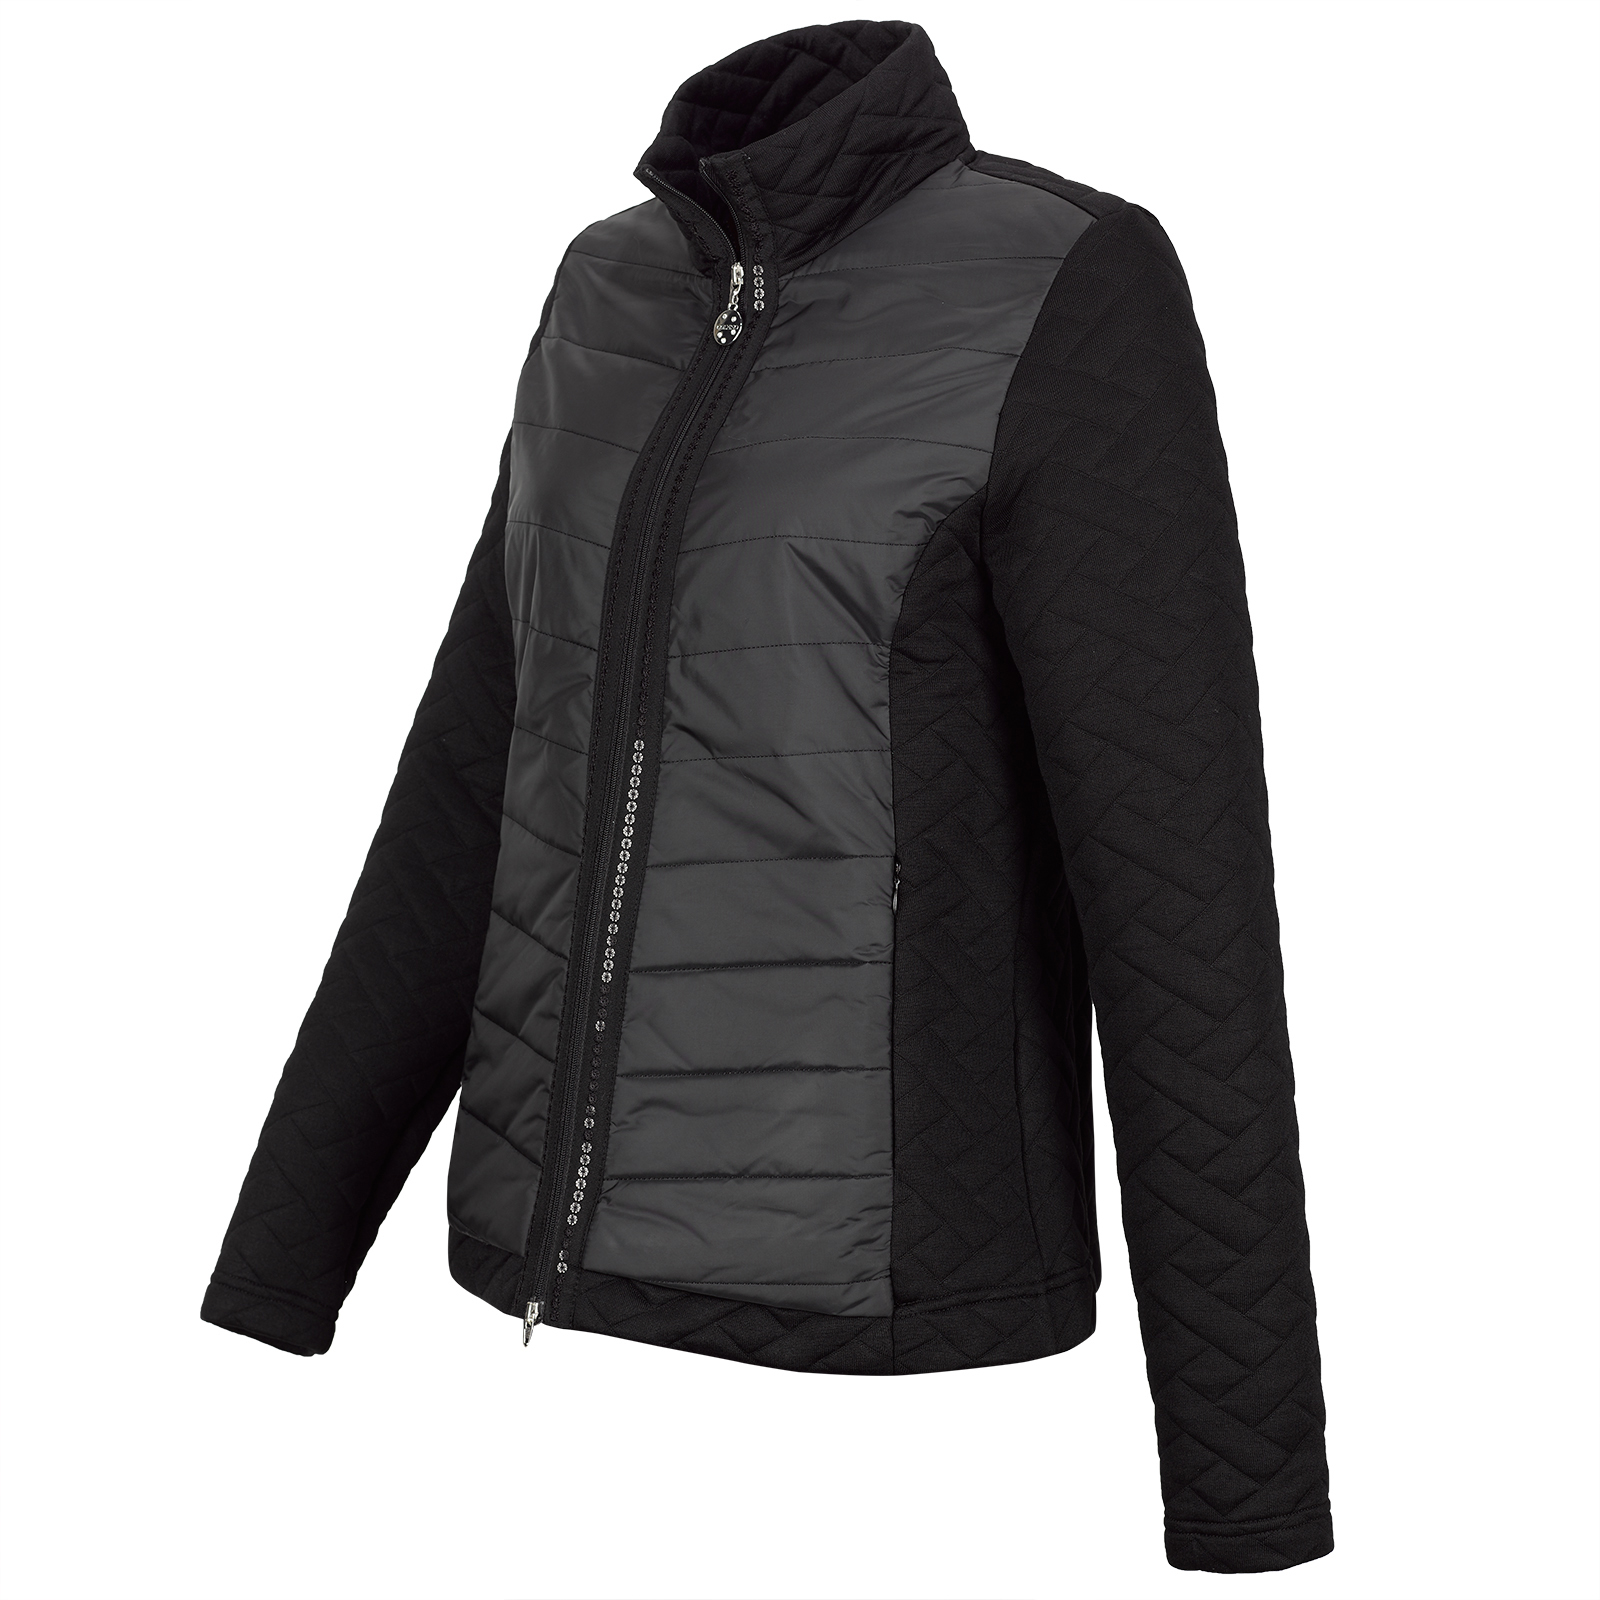 Damen Cold Protection Golfjacke mit Pailletten-Besatz